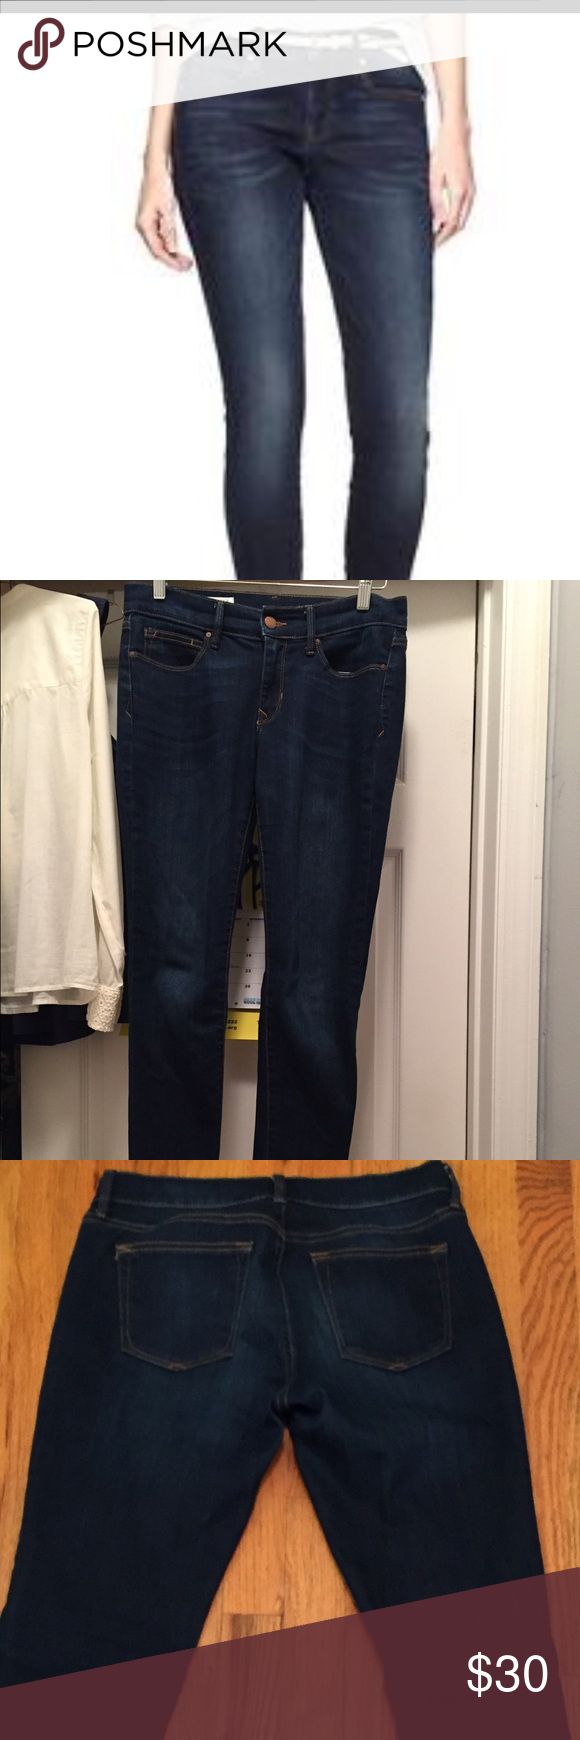 Gap legging jeans in Santa Cruz Blue Gap skinny legging jeans. Size 28s. 98%cotton/2%lycra. No stains/rips/holes. These are the short length jeans from the Gap, not Gap factory. No alterations or hemming. GAP Jeans Skinny